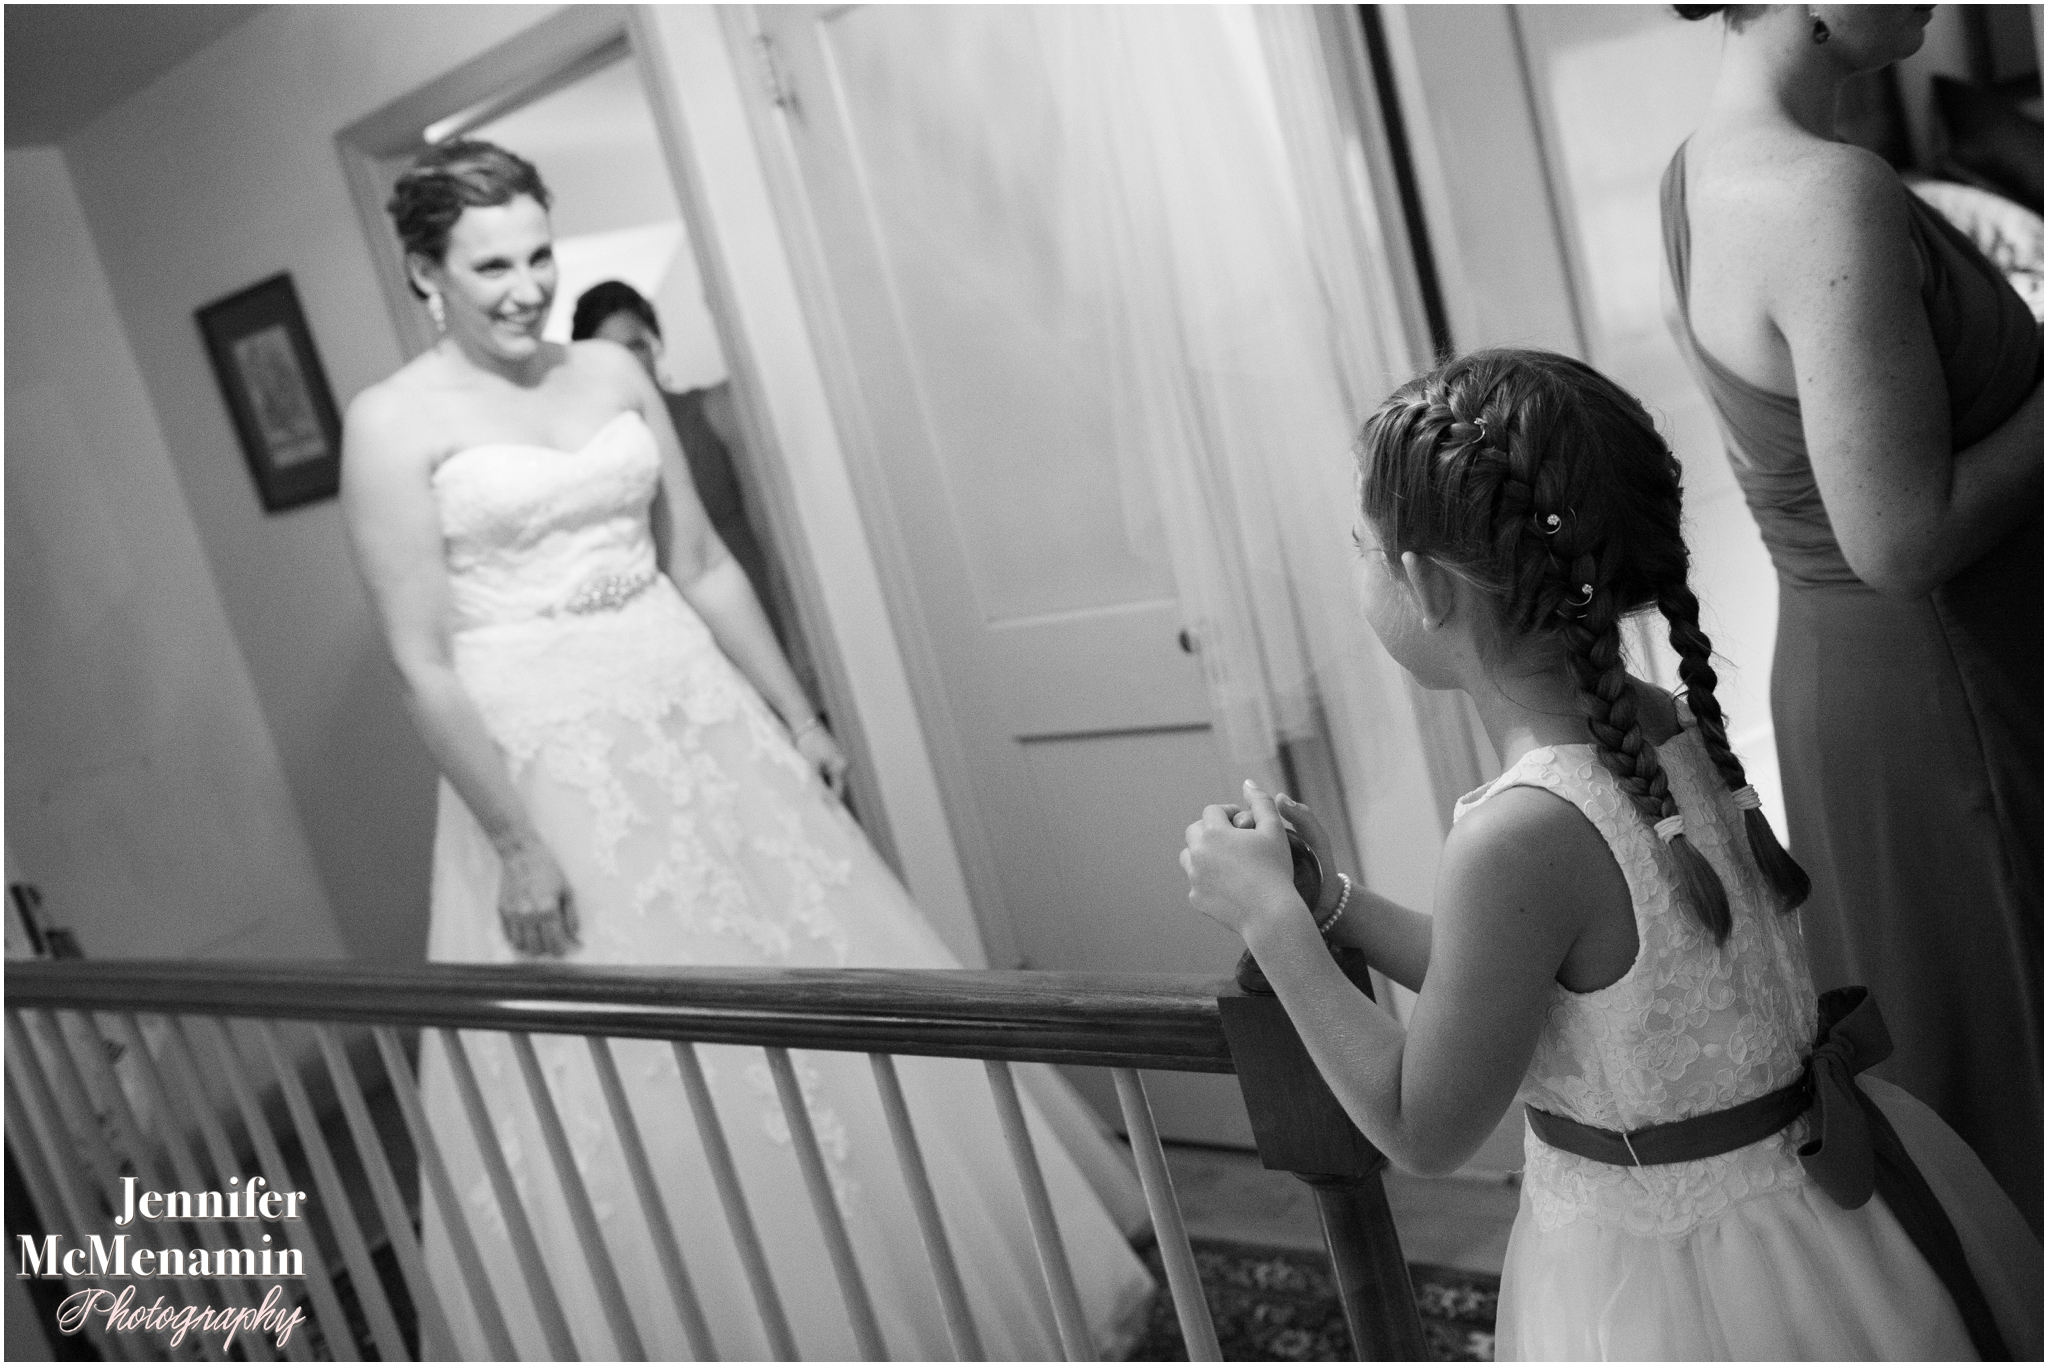 016-HenningMiller_00549-0103_JenniferMcMenaminPhotography_Evergreen-Museum-And-Carriage-House_Evergreen-wedding_Baltimore-wedding-photographer_Baltimore-wedding-photography